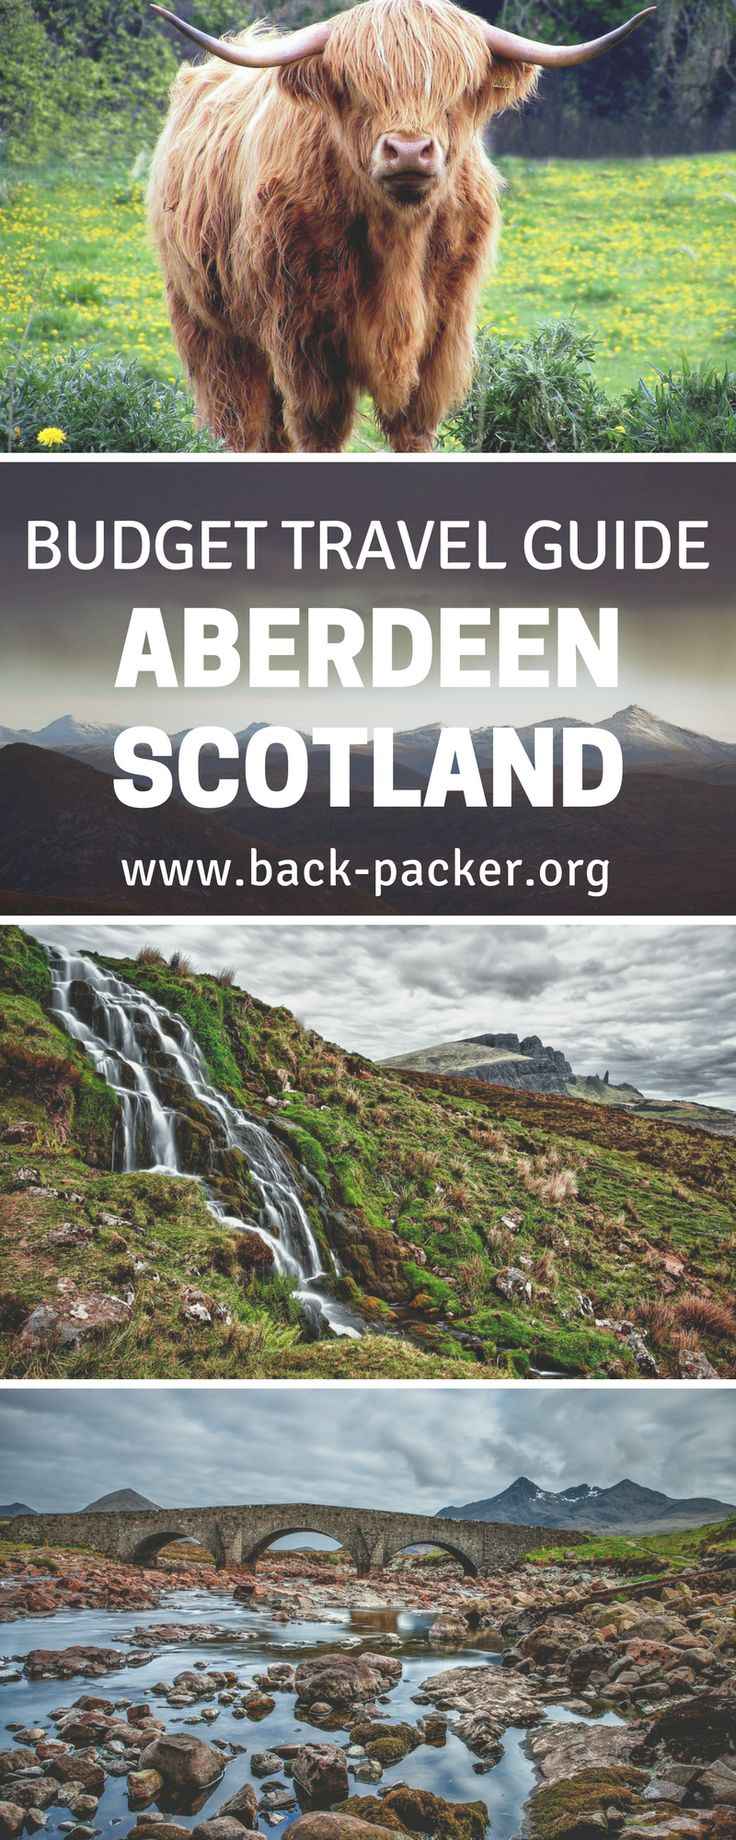 A budget travel guide to free things to do to in the often overlooked city of Aberdeen, Scotland. Take a train from London or Edinburgh to a small city located near the famous highlands. Wander around the city and take in the beautiful landscape surrounding Aberdeen. The local university of King's College is a must see.   Back-packer.org #Aberdeen #Scotland